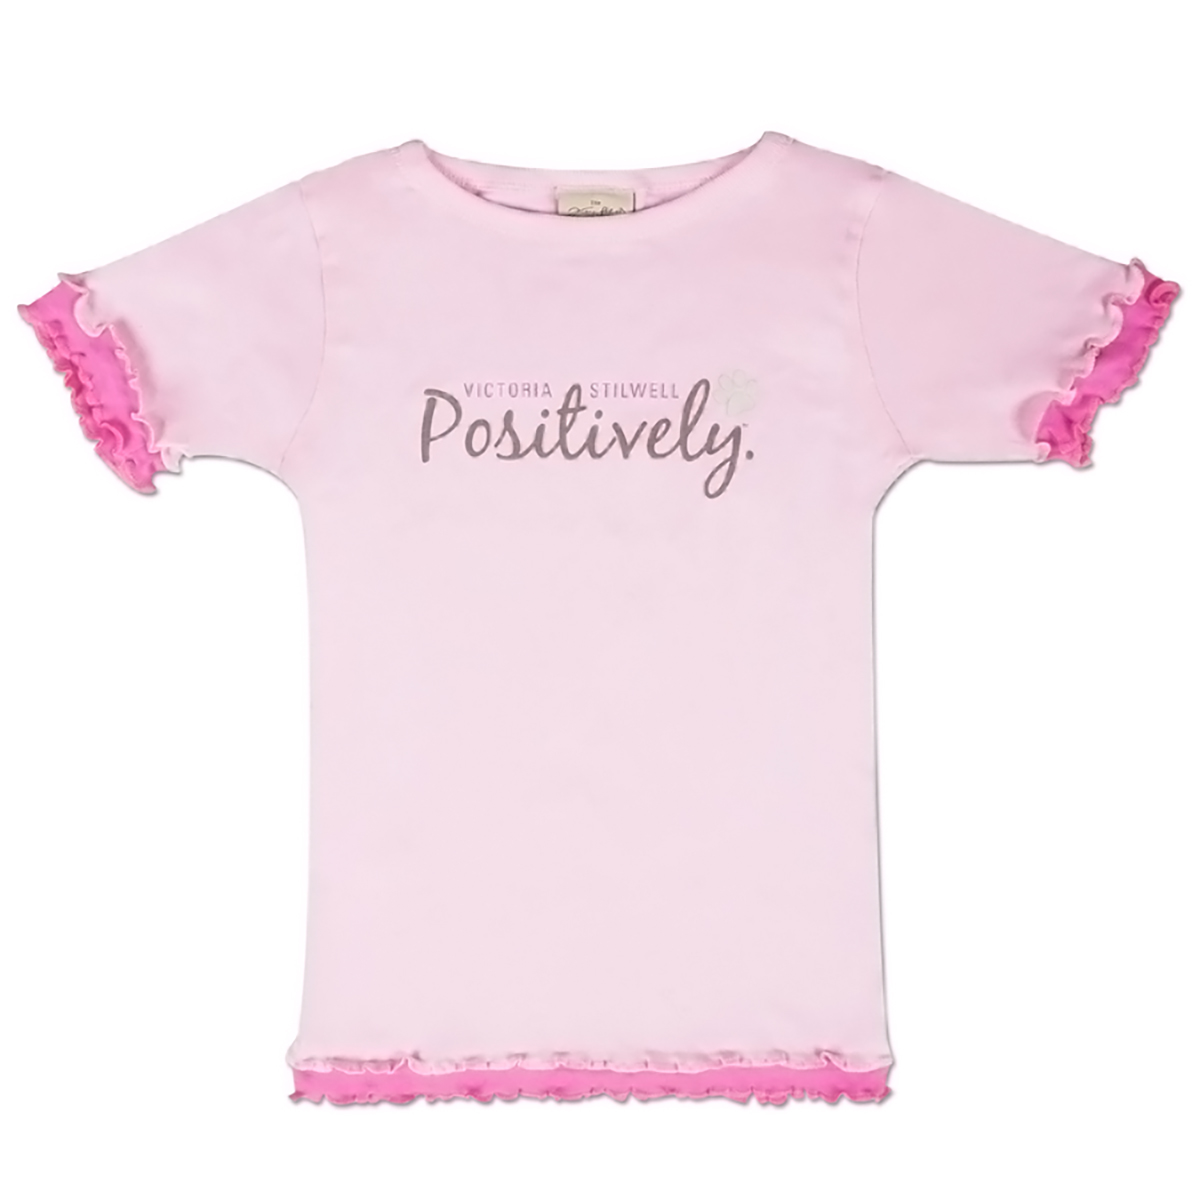 Positively Youth Girls Ruffle T-Shirt